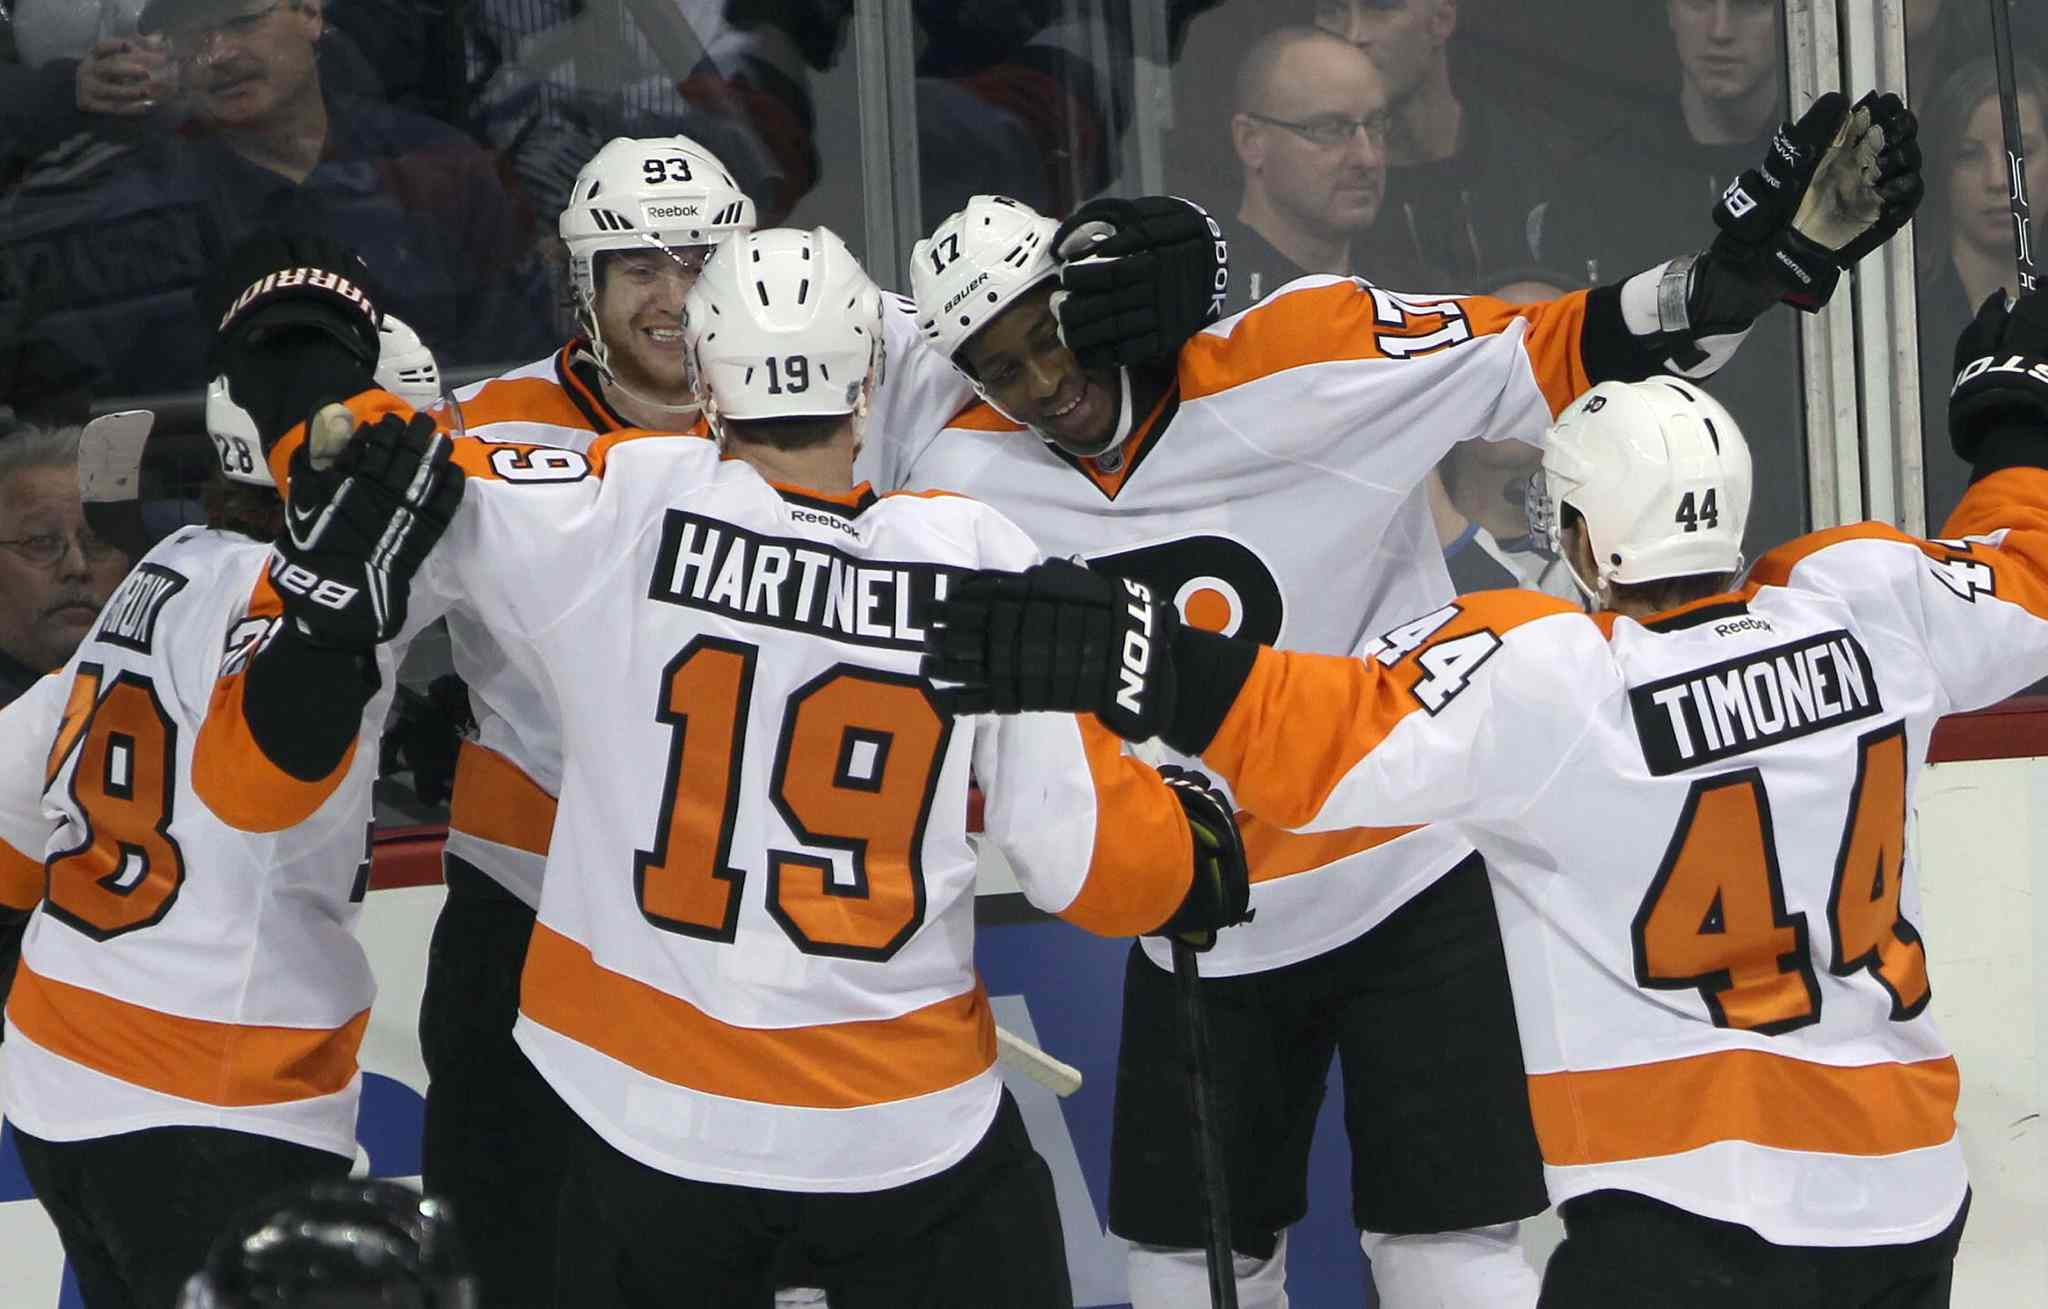 Philadelphia Flyers Wayne Simmonds (top right) is congratulated by teammates on his first-period goal.